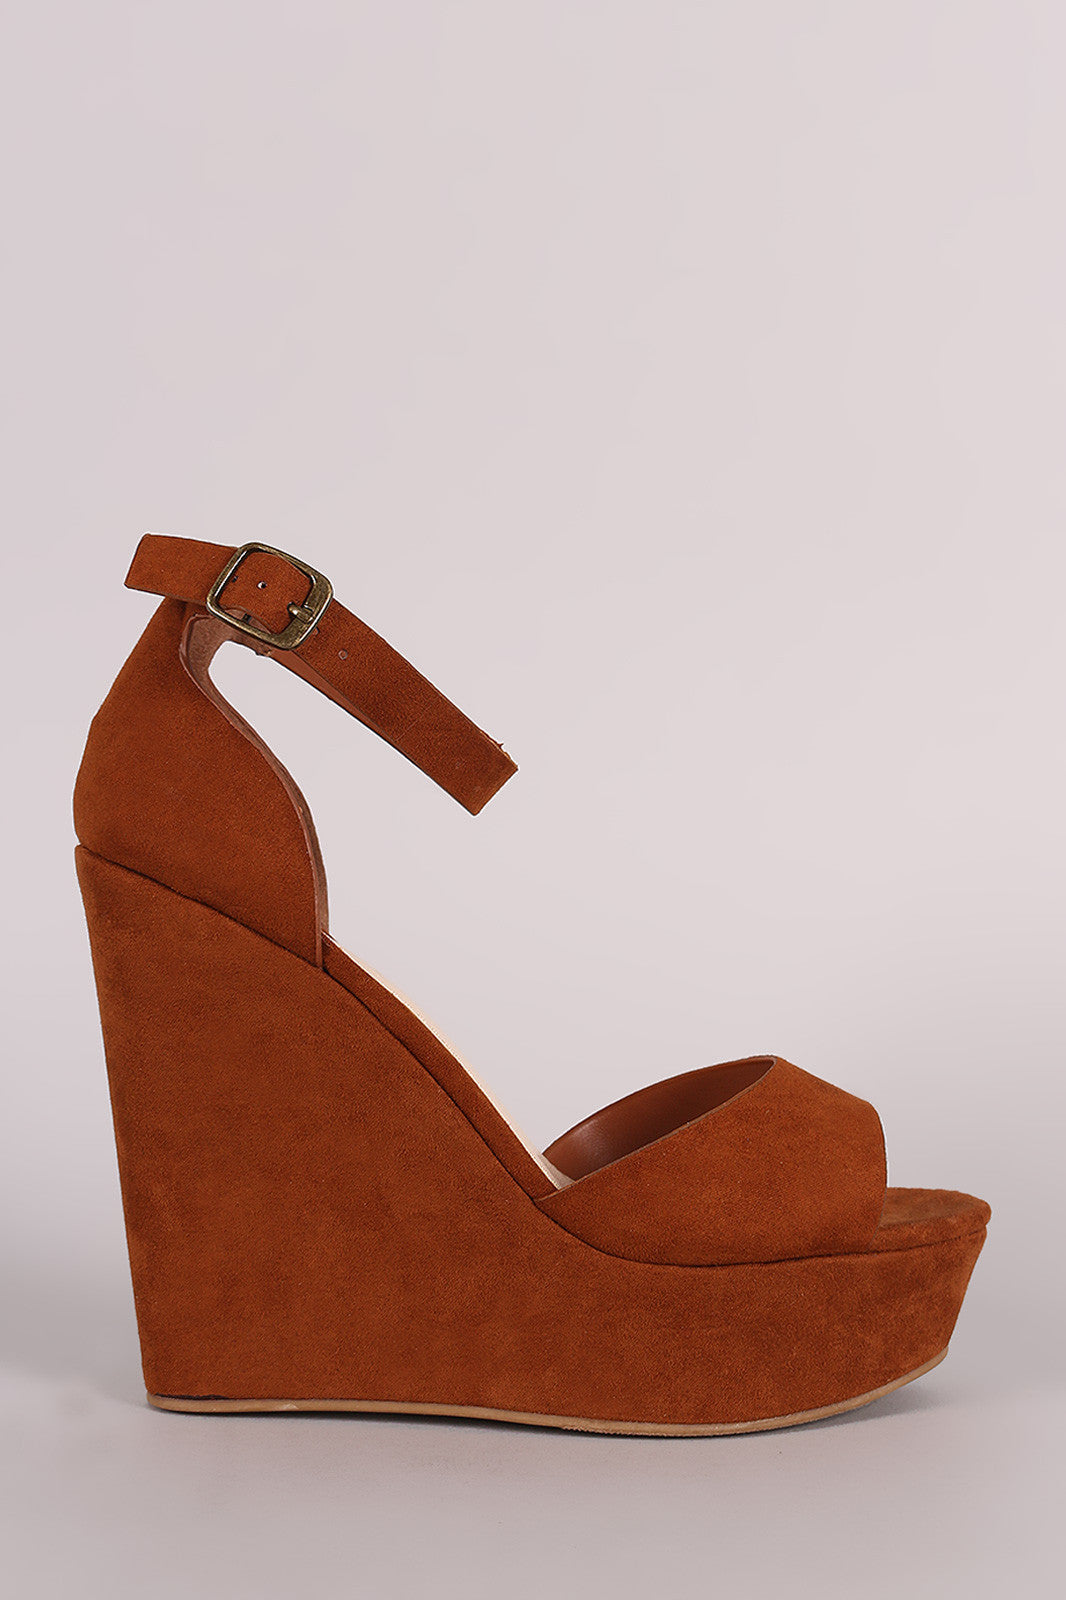 Bamboo Suede One Band Platform Wedge - Thick 'N' Curvy Shop - 4